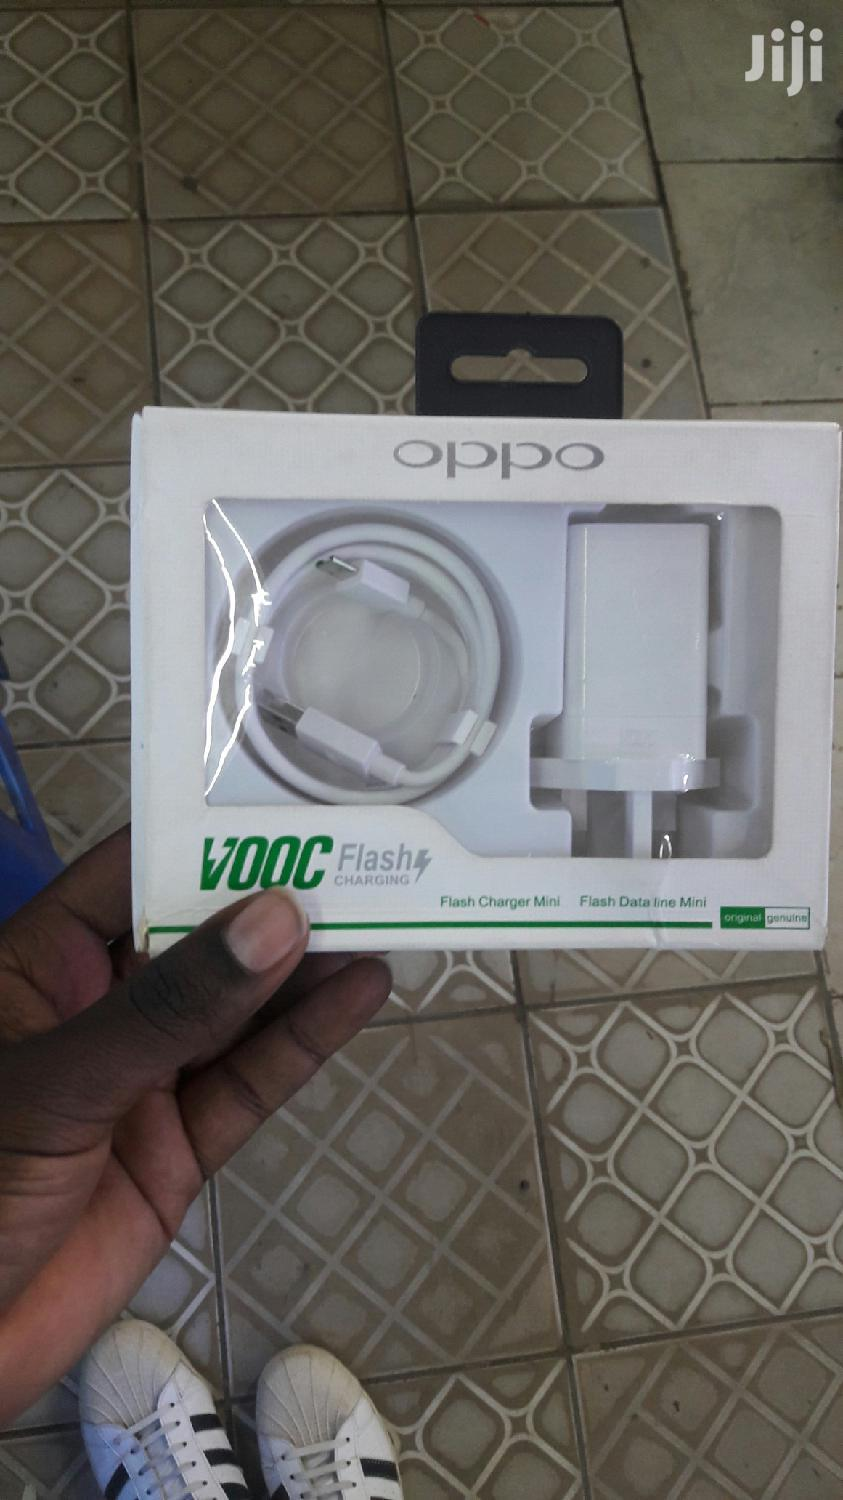 Oppo Mobile Chargers   Accessories for Mobile Phones & Tablets for sale in Nairobi Central, Nairobi, Kenya